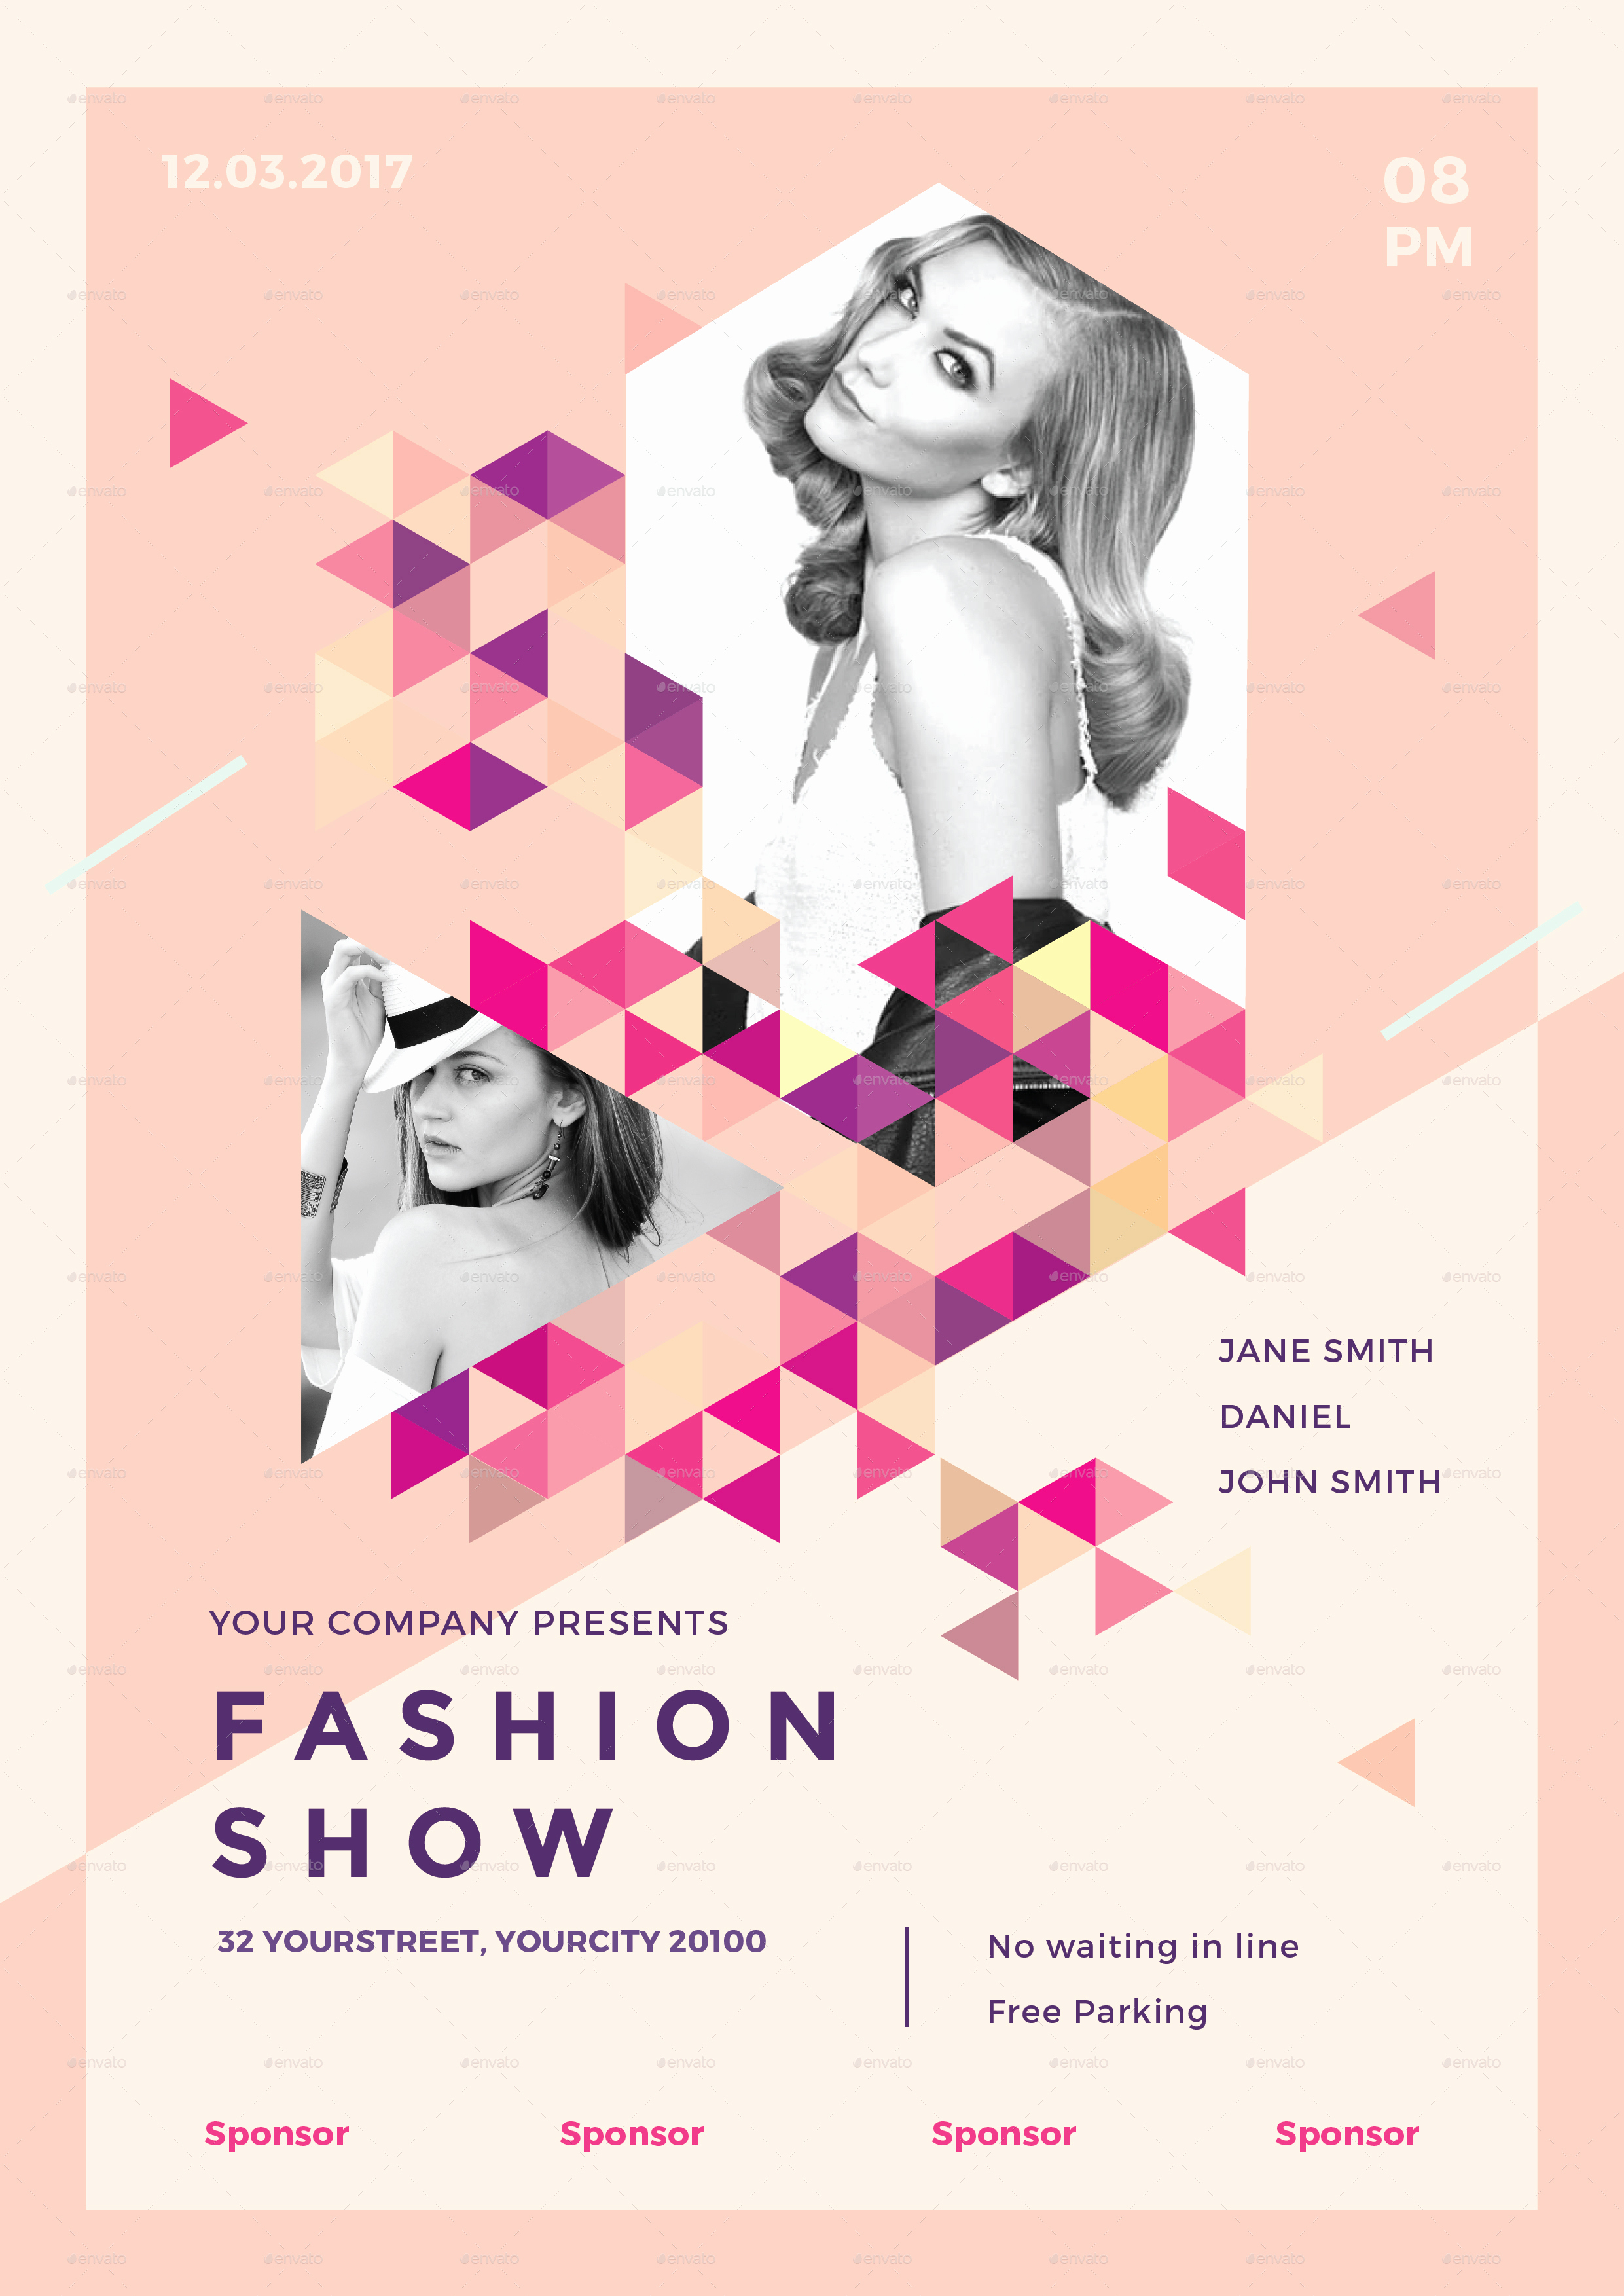 Fashion Show Invitation Template Beautiful Fashion Show Flyer by Infinite